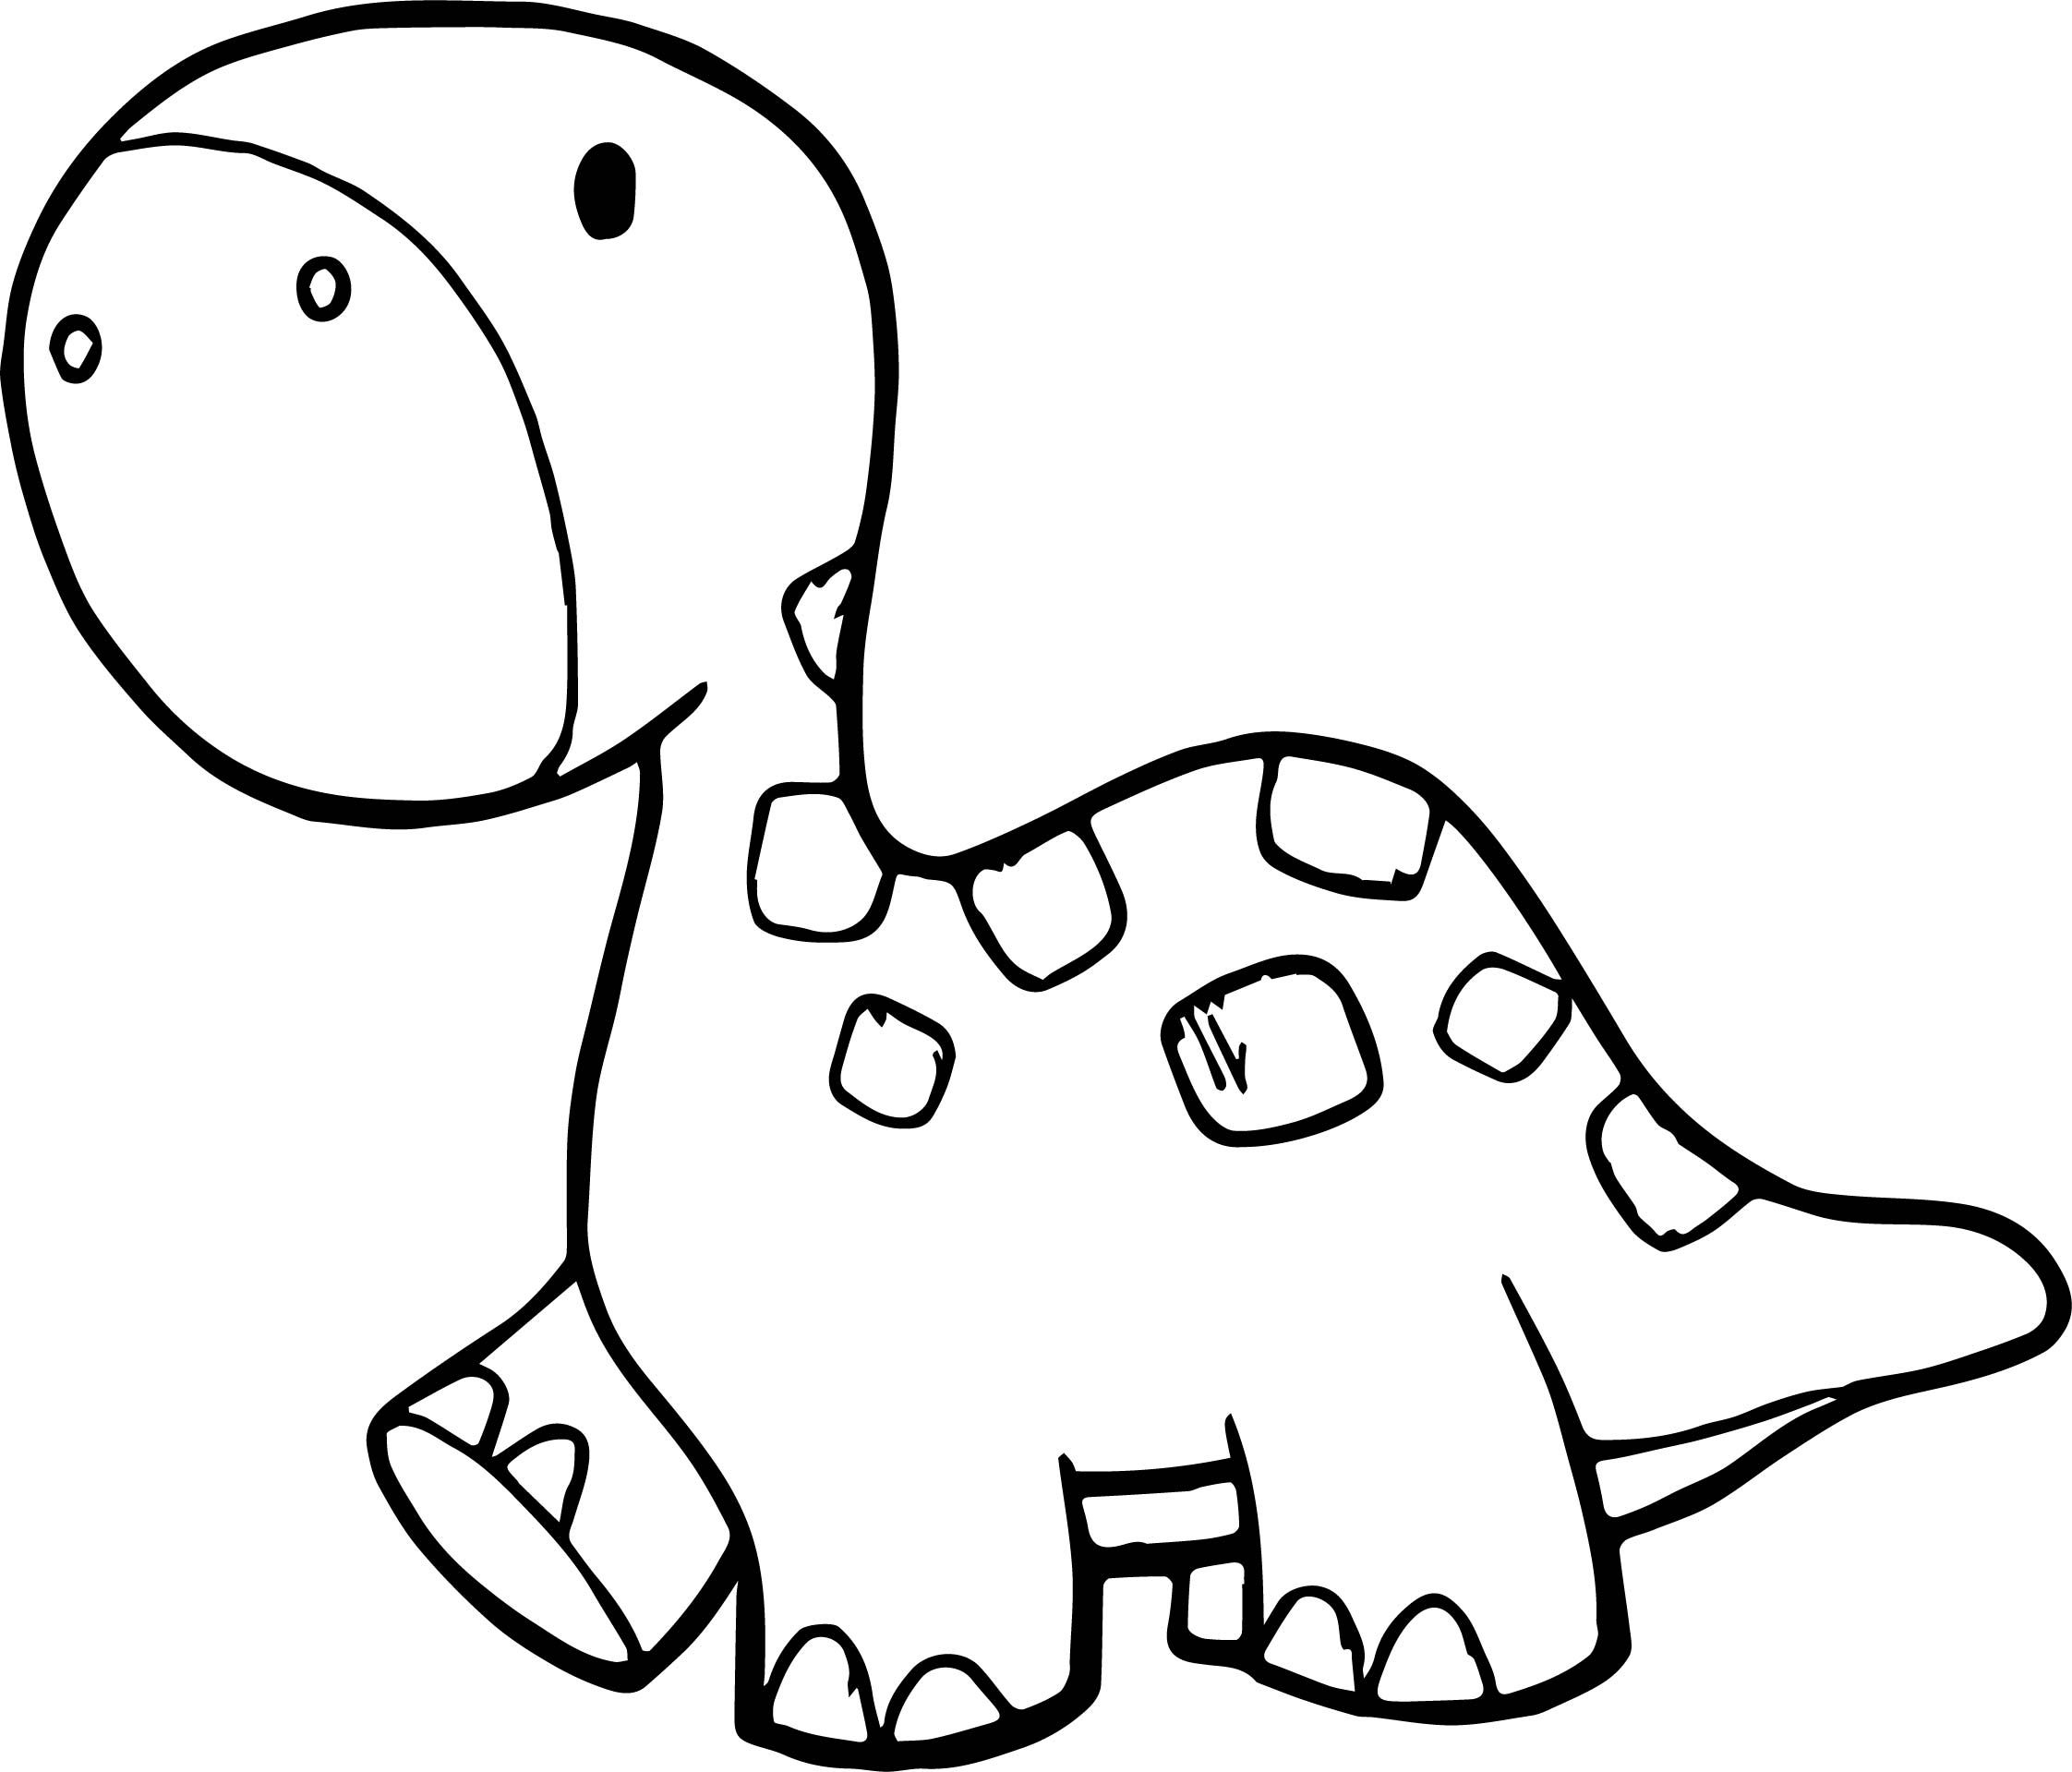 Awesome Walking Smaller Dinosaur Coloring Page